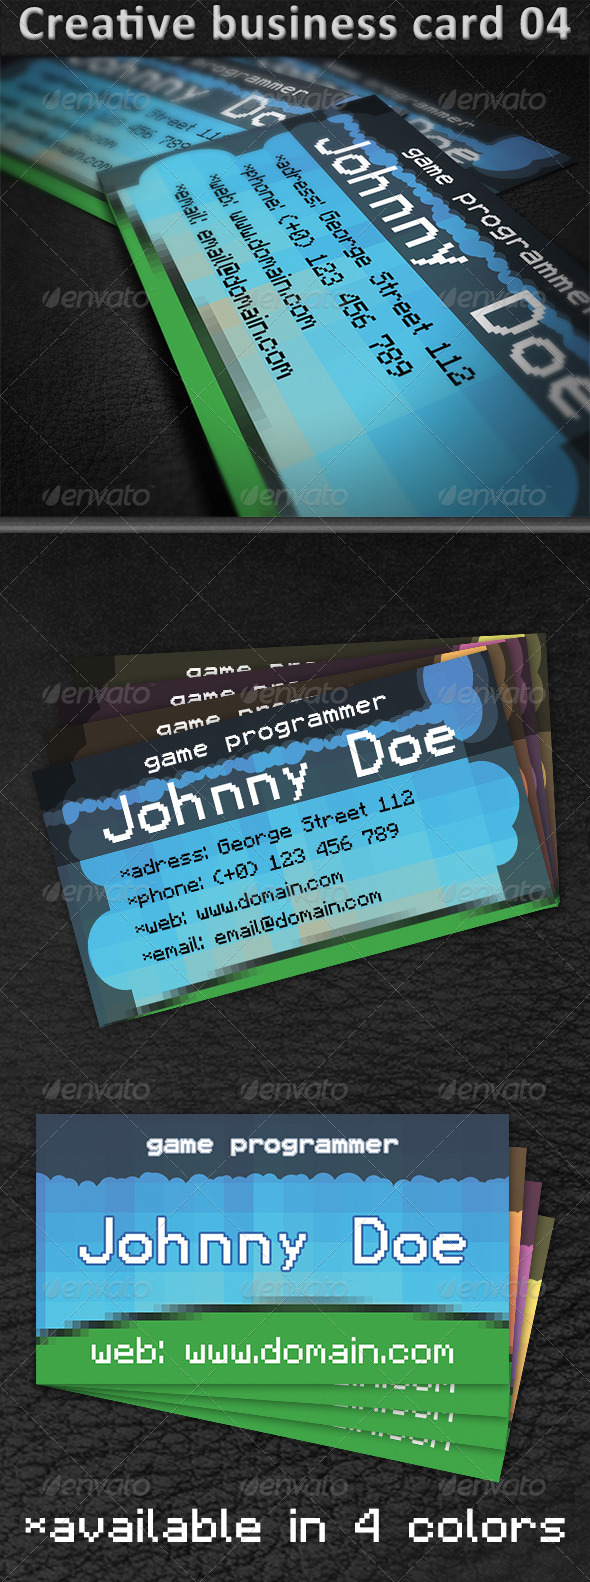 GraphicRiver Creative Business Card 04 5011502